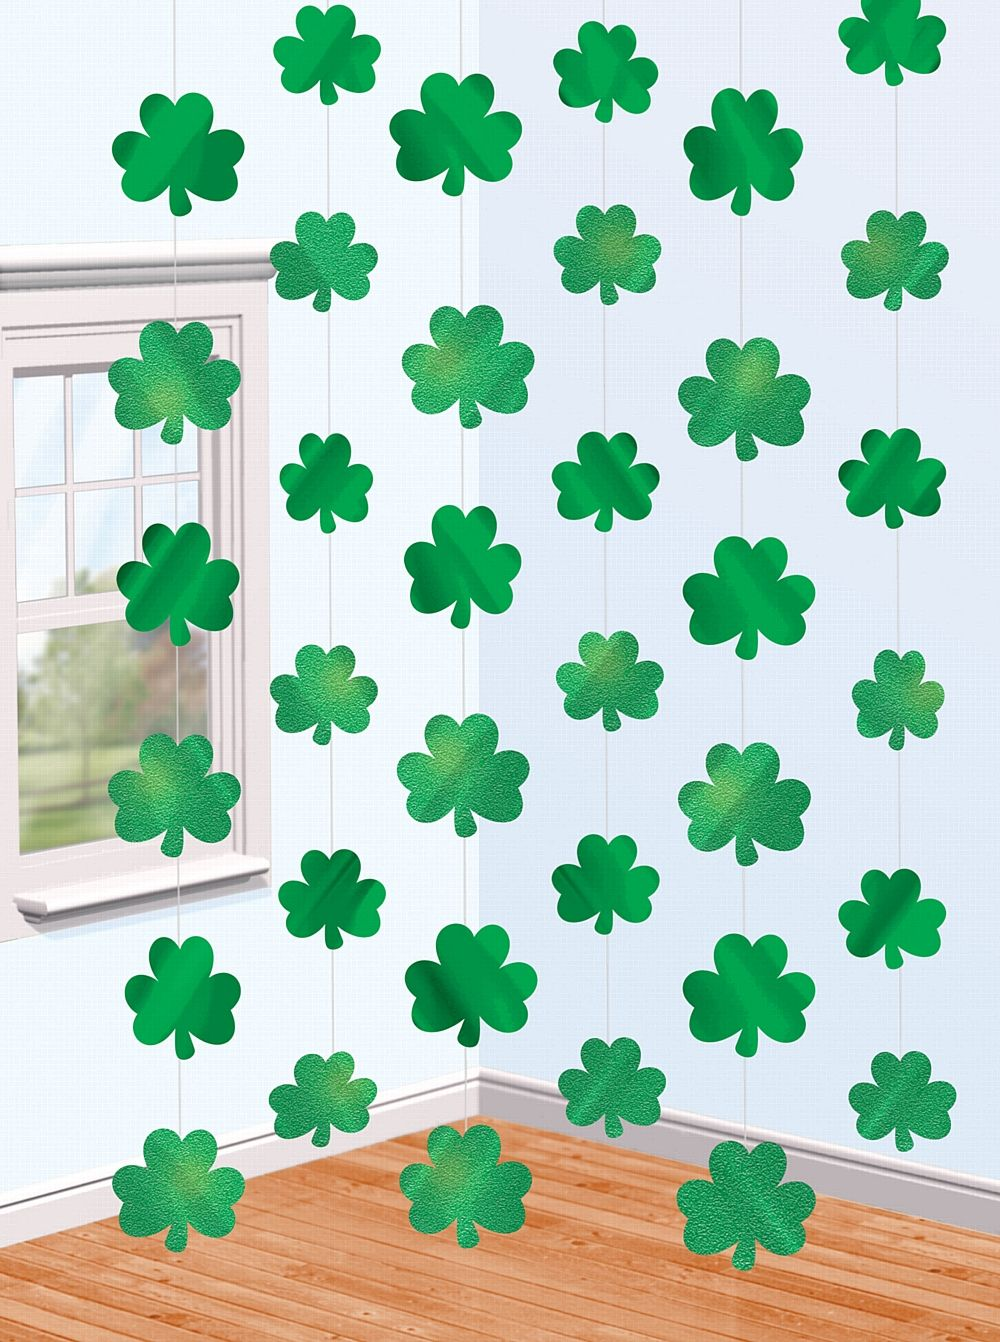 fancy green irish me decorations patricks bunting banner patrick s limited celebration paddys shamrock party garland st glittery decor image day